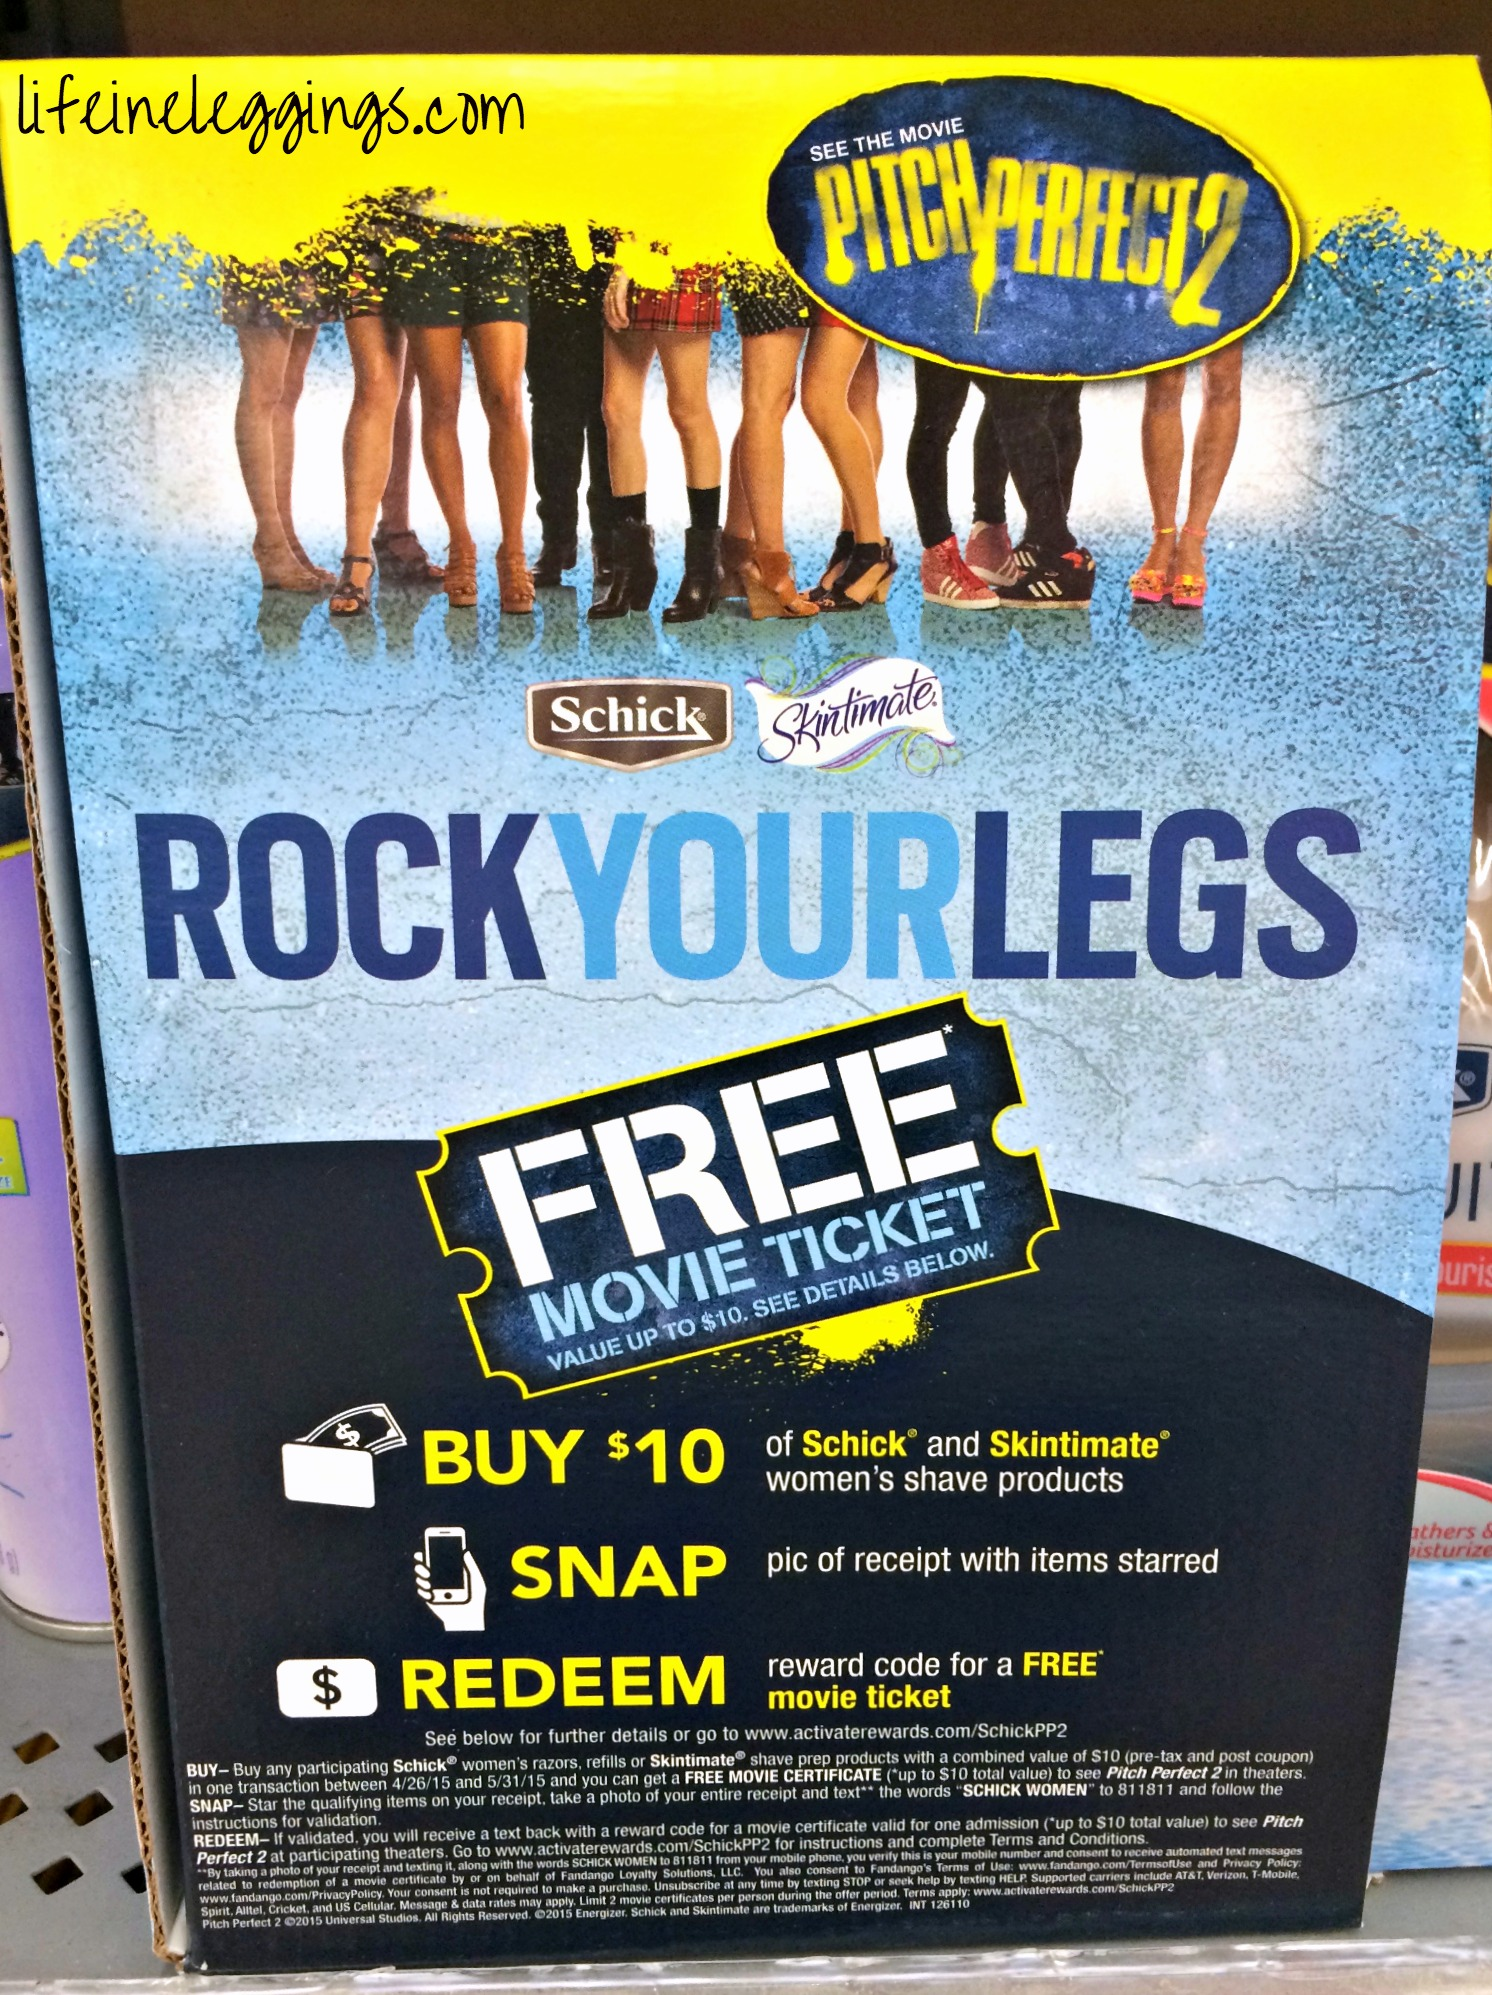 Rock Your Legs with Schick and Skintimate